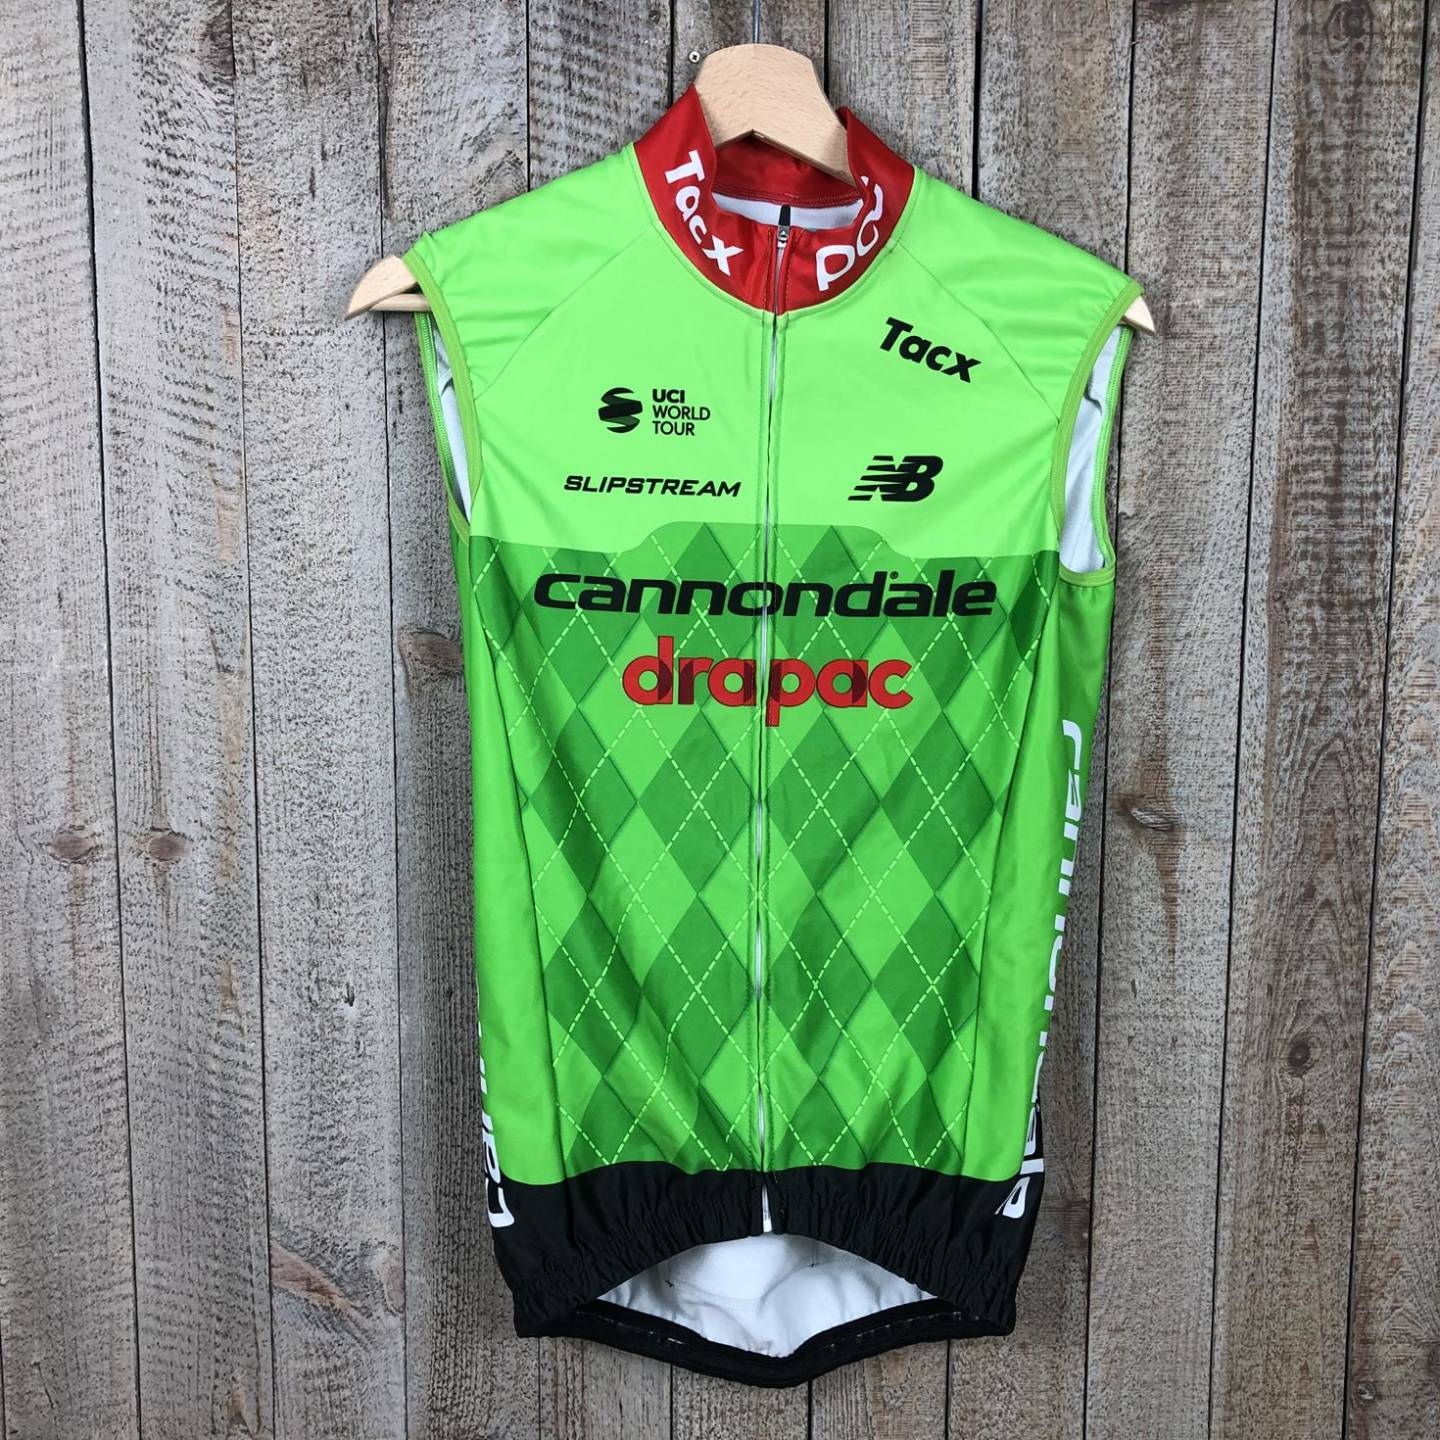 Thermal Vest - Cannondale Drapac 00002142 (1)